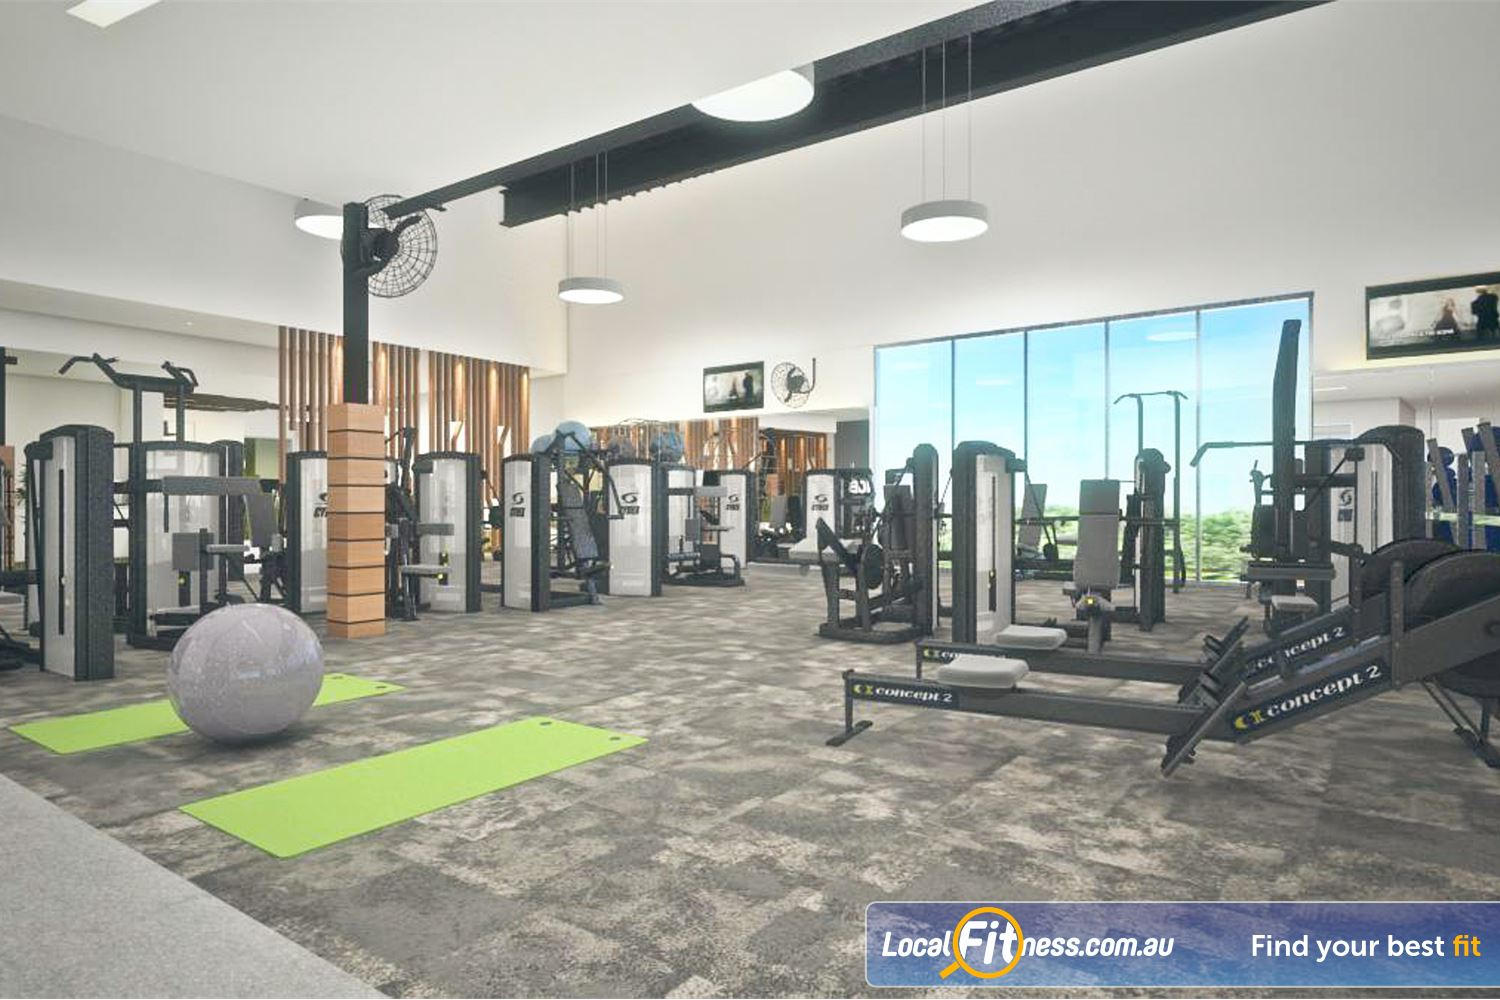 Goodlife Health Clubs Success Welcome to the new 24 hour Success gym.